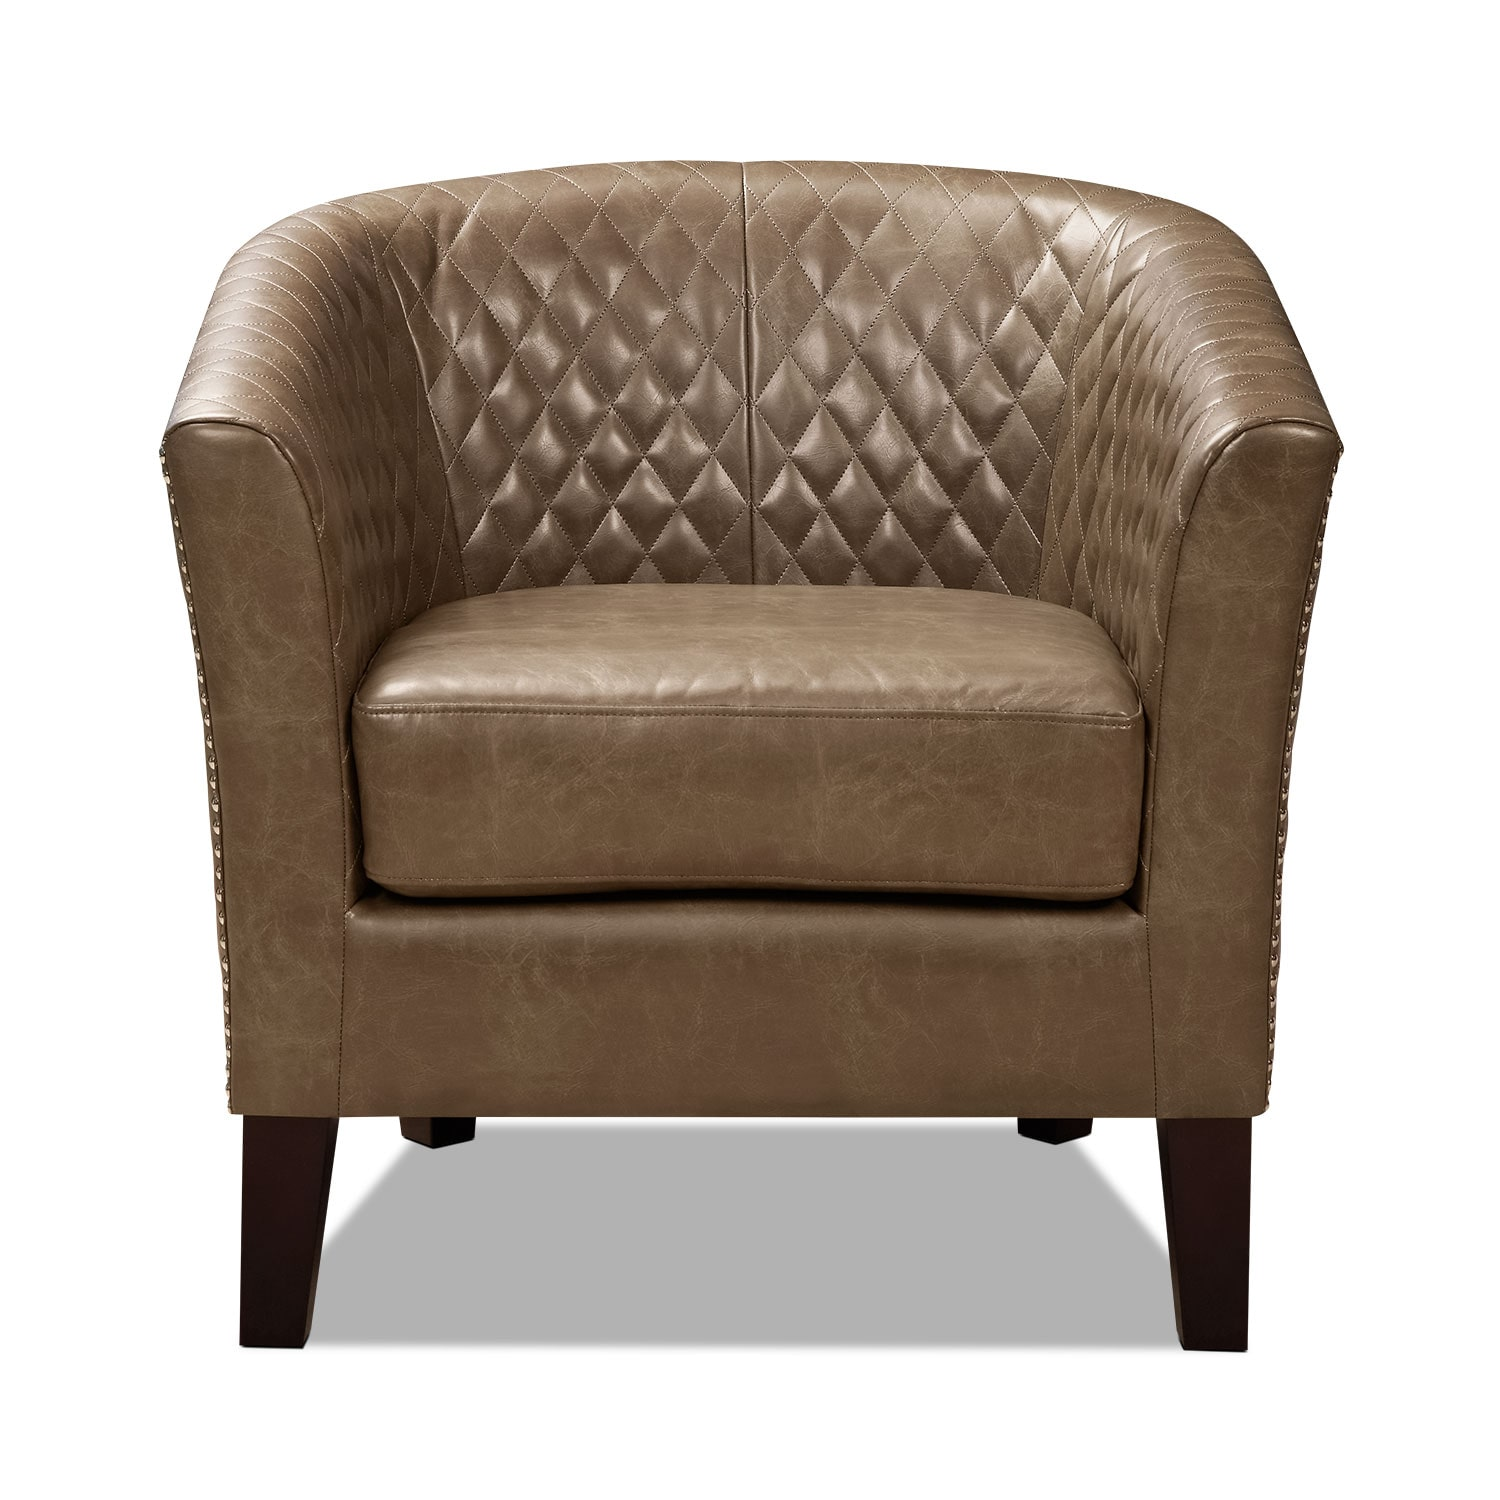 accent sofa soderhamn and chaise lounge luxor chair value city furniture mattresses